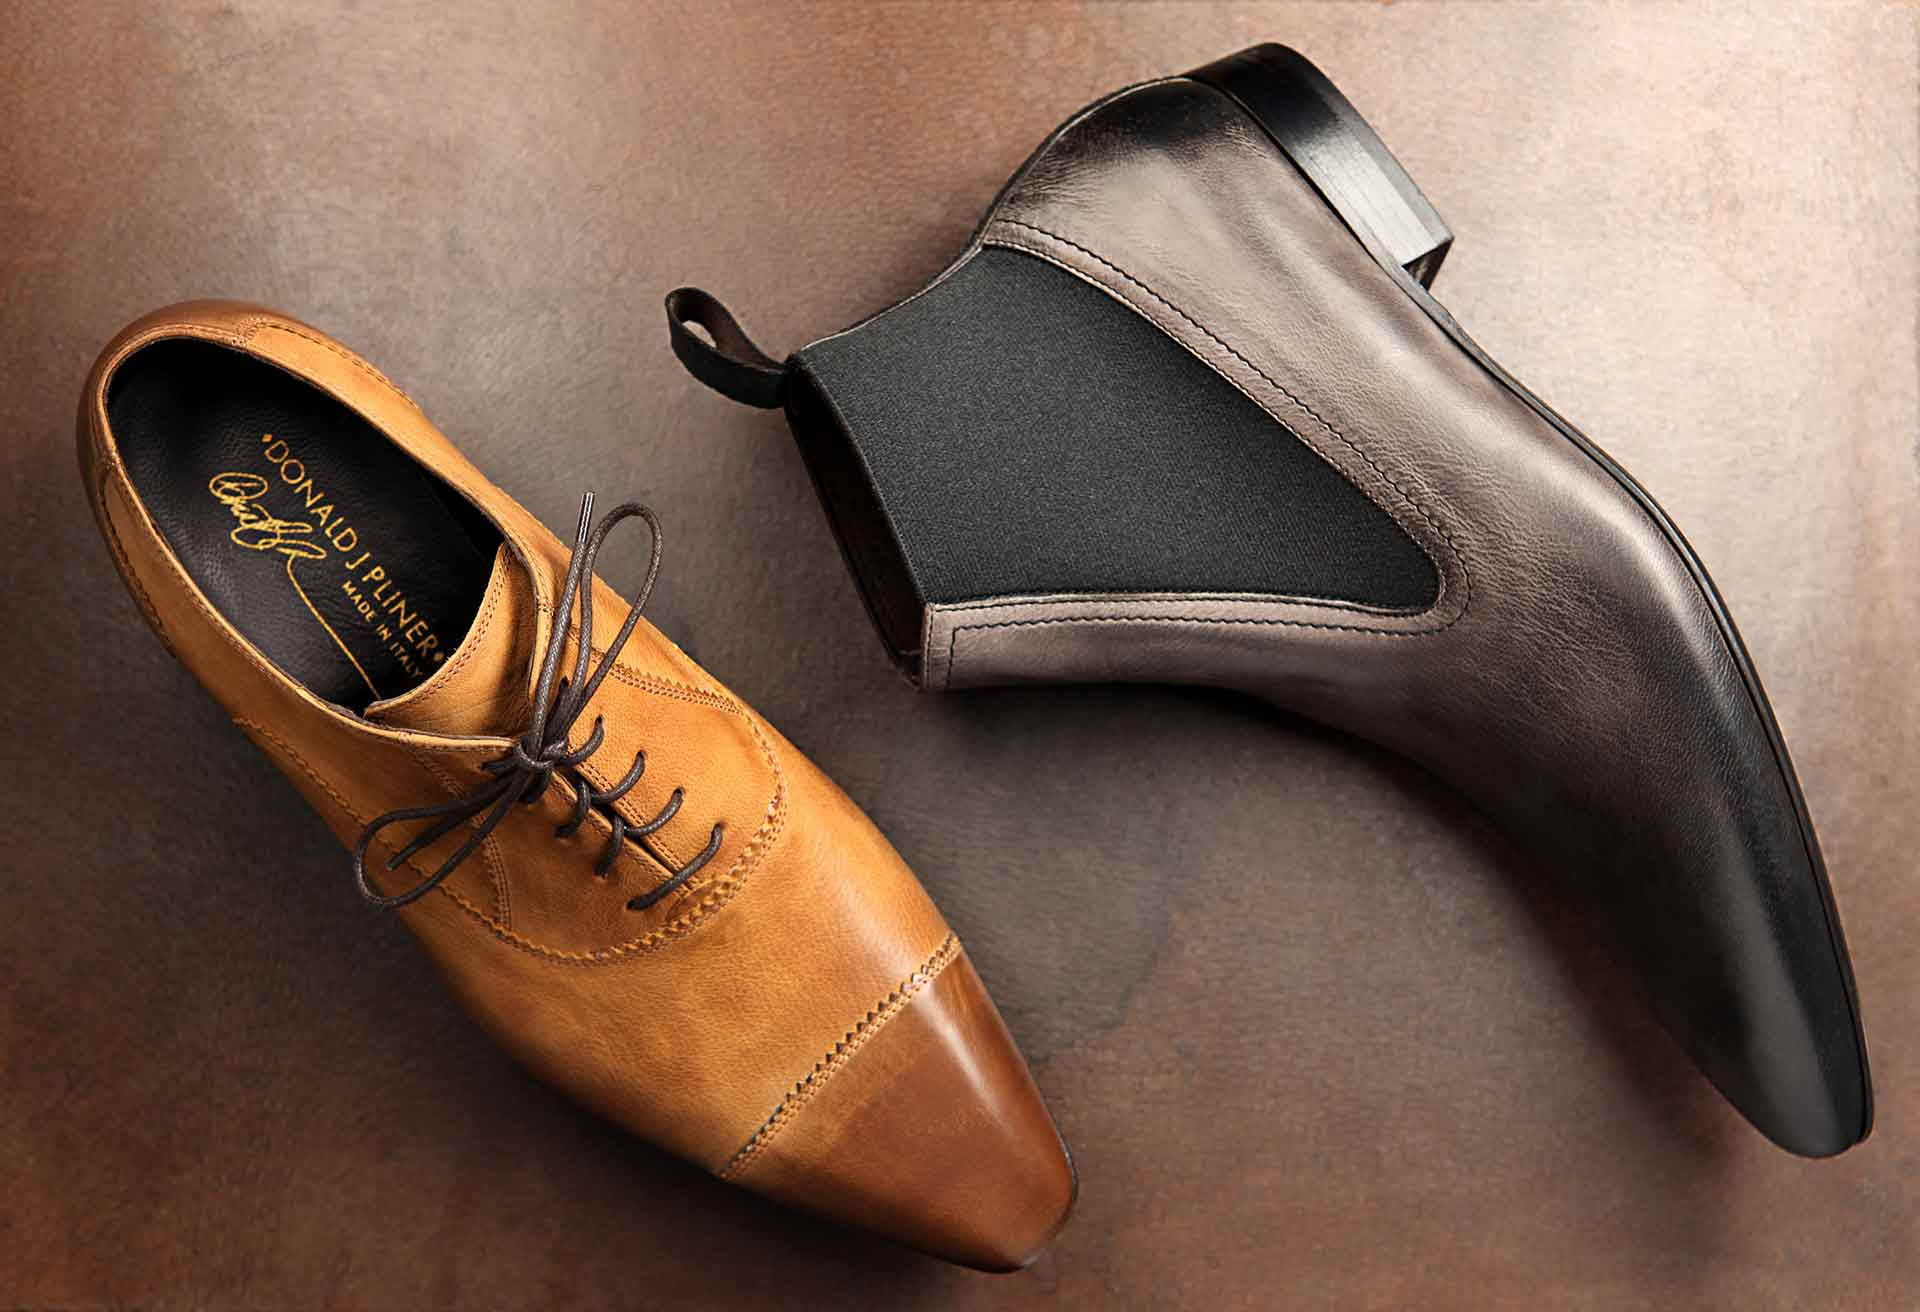 Leather shoes photographed by soft and hard goods still life photographer Kate Benson.